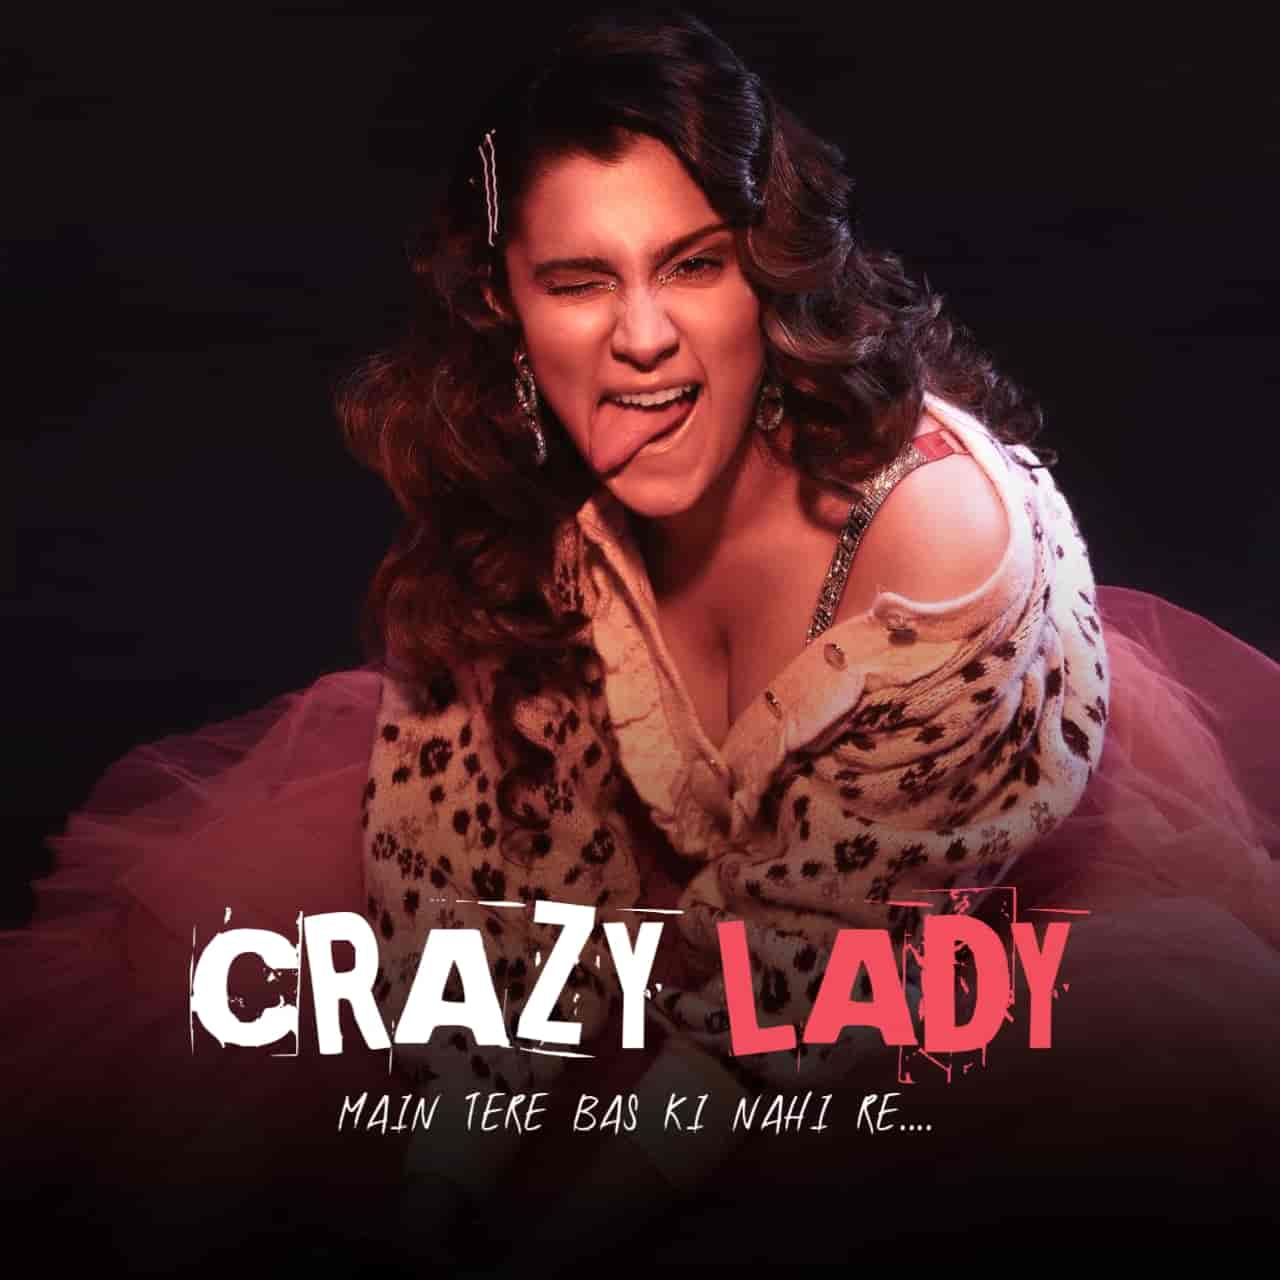 Crazy Lady Hindi Funny Song Image Features Aastha Gill